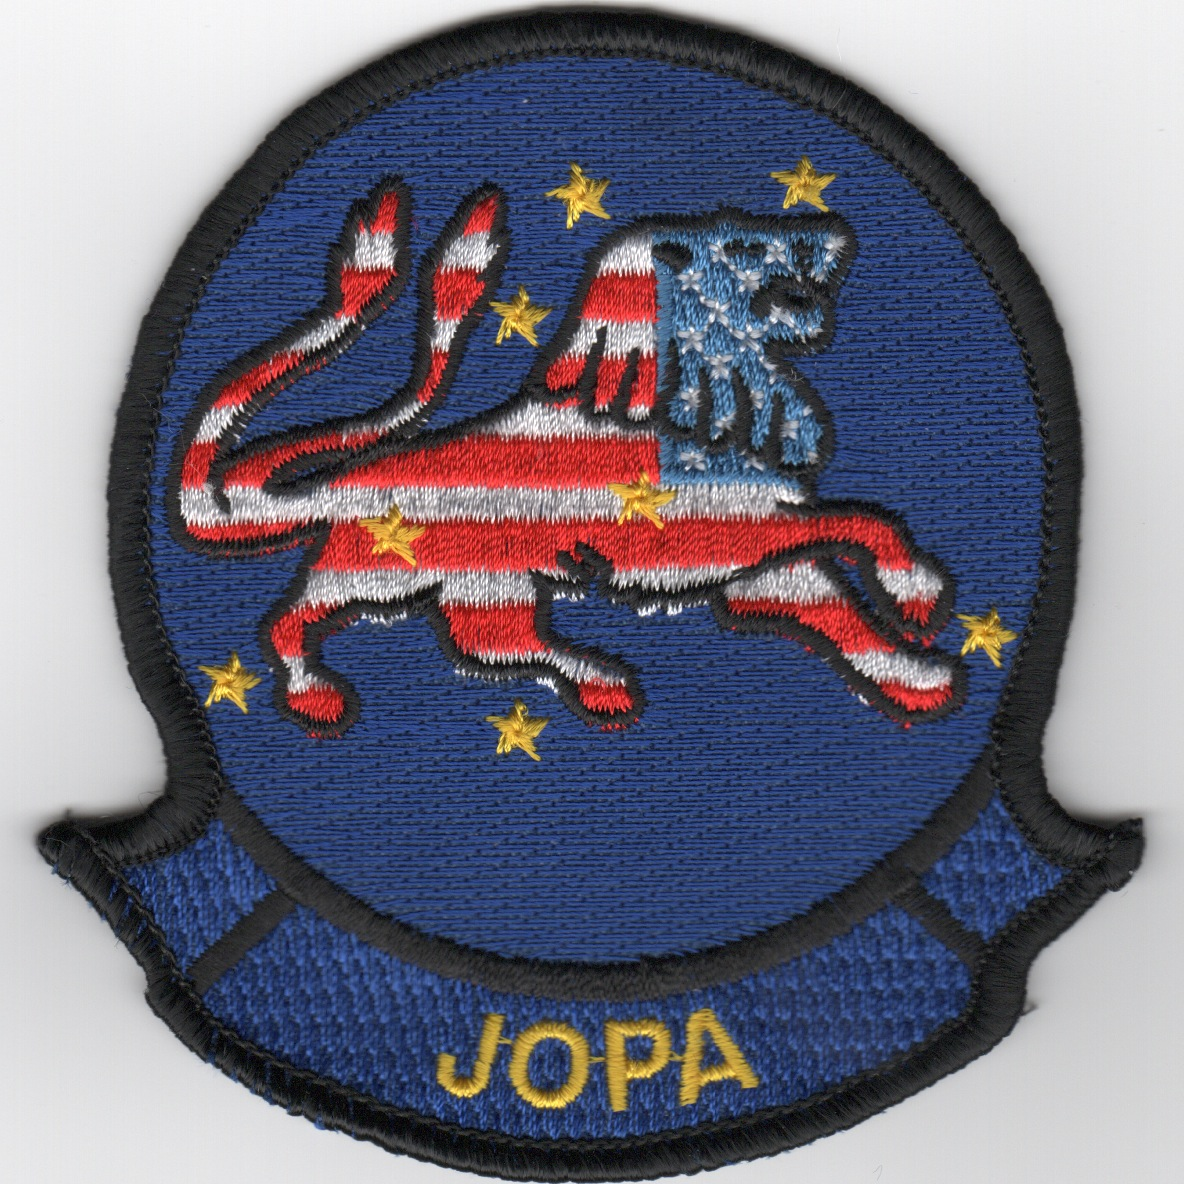 VFA-213 'JOPA' Patch